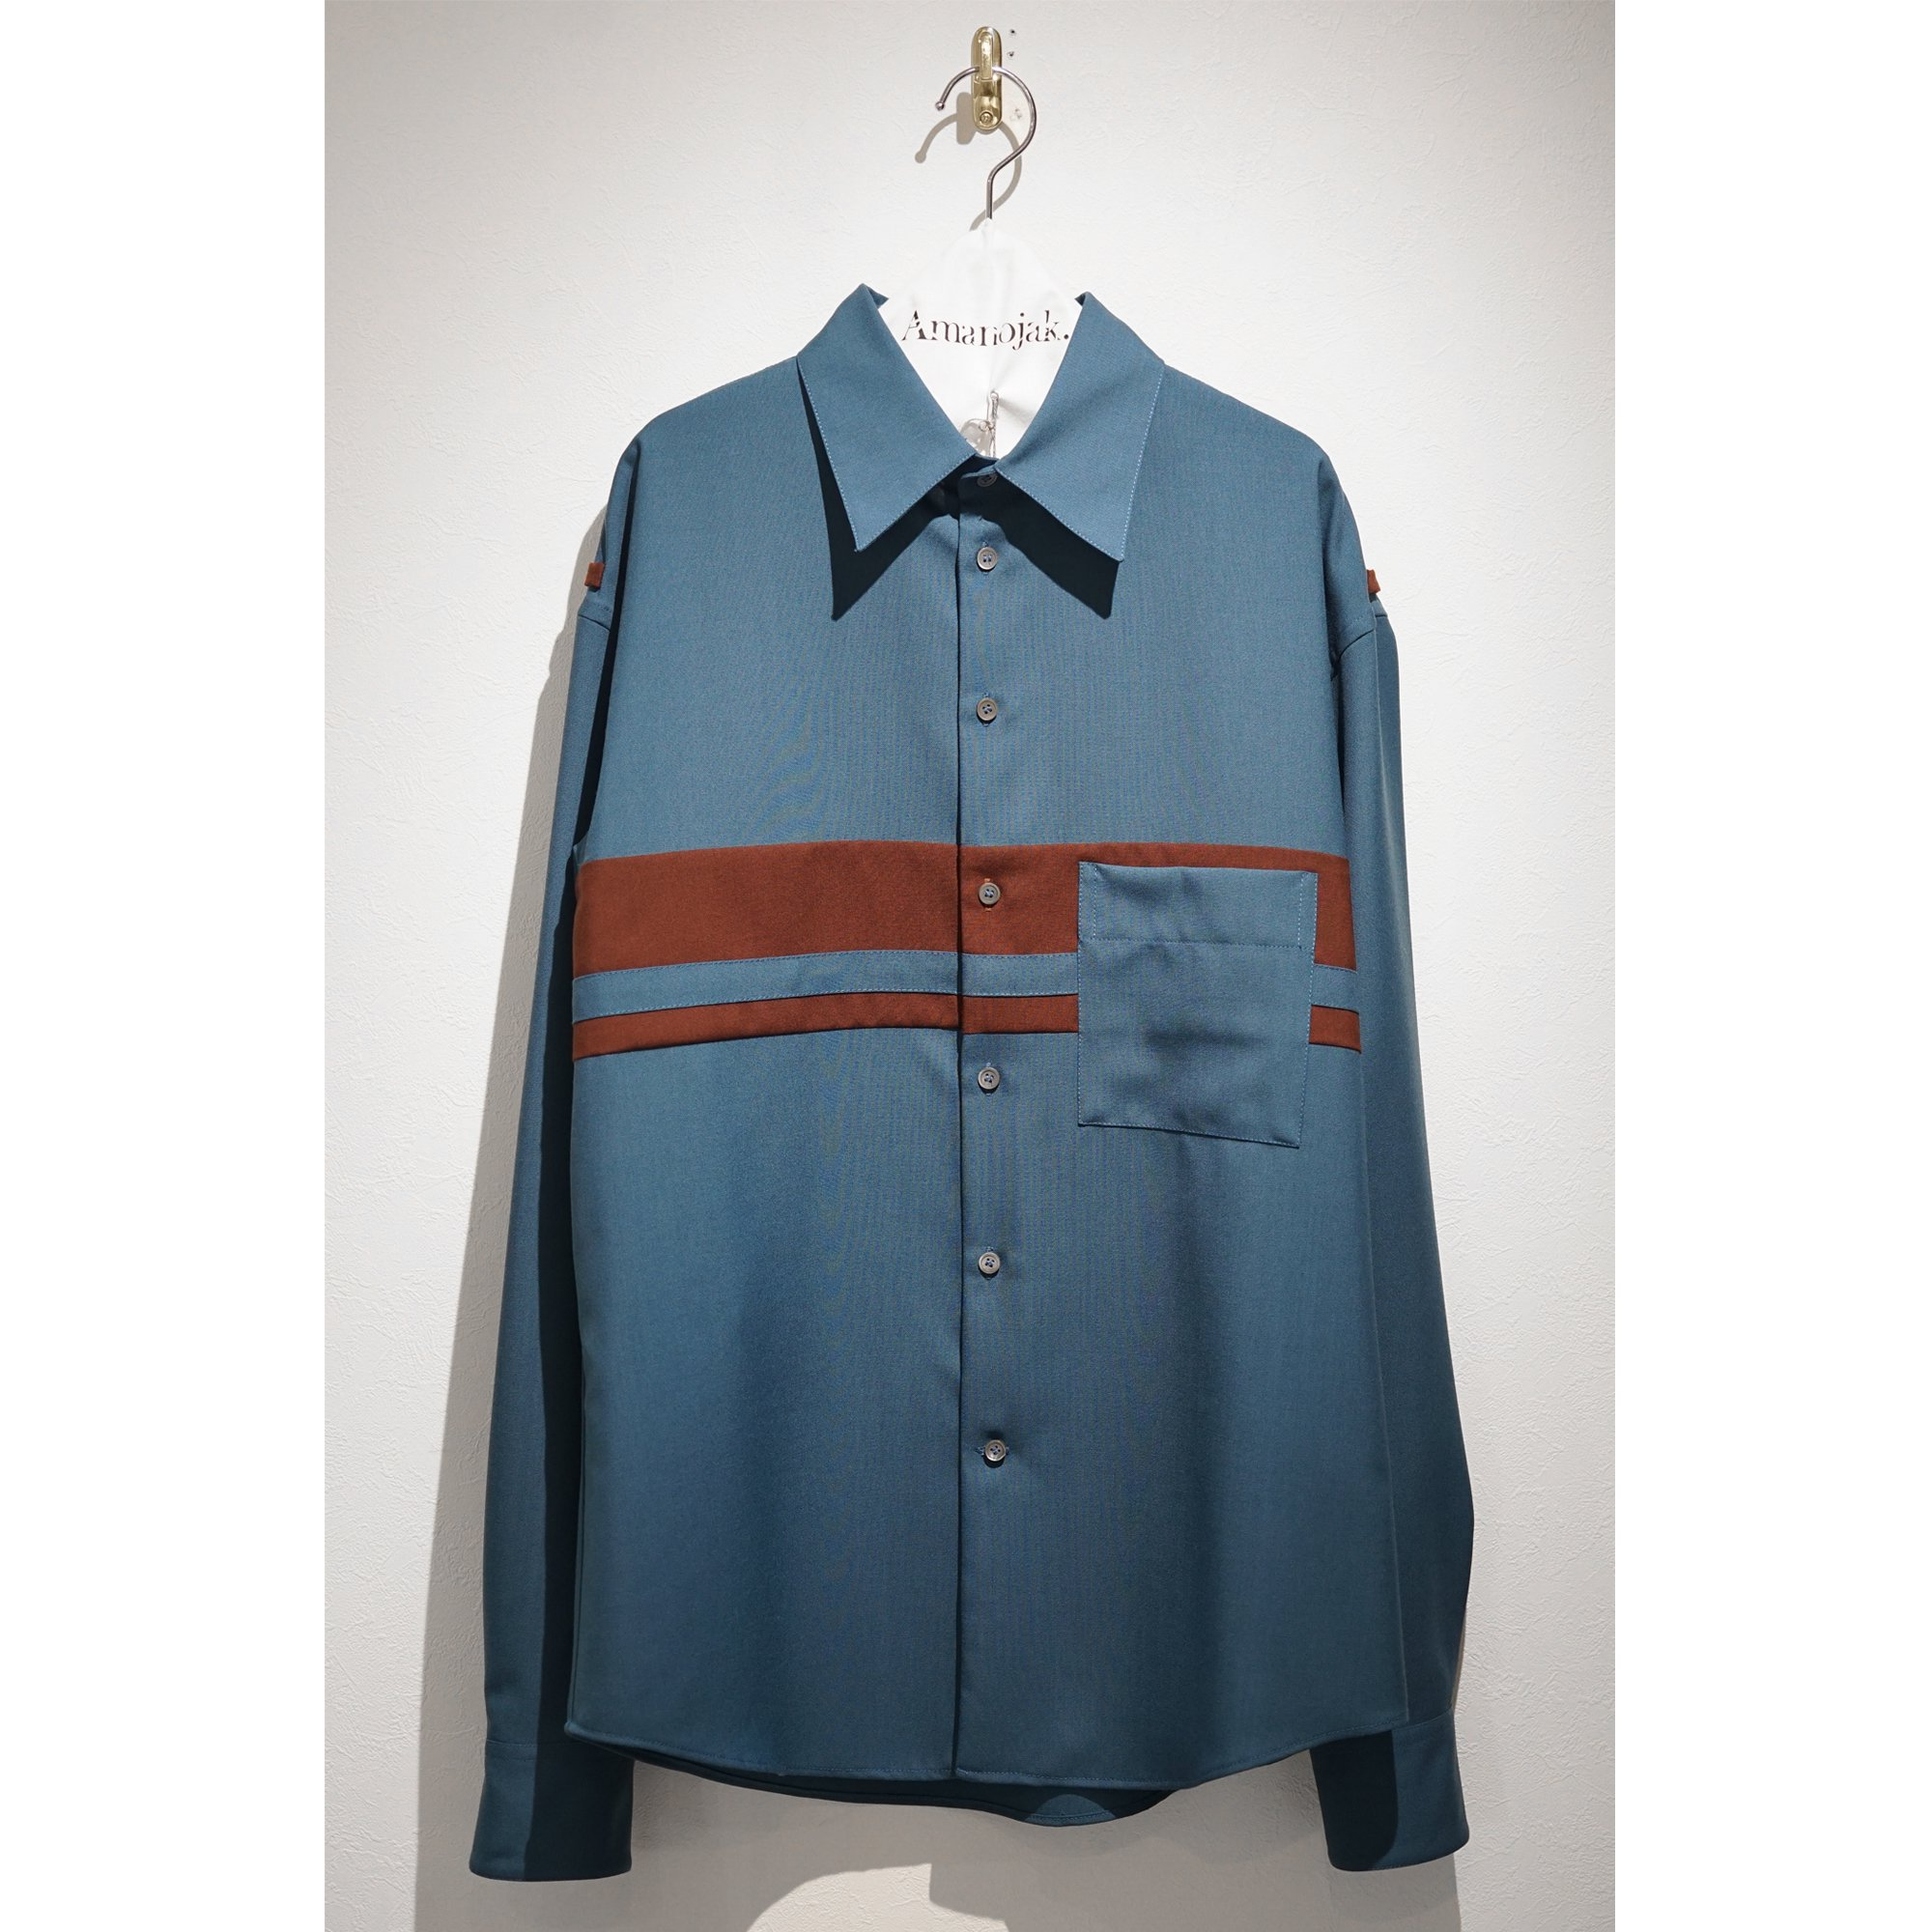 MARNI-WOOSTED WOOL COLOR BLOCK SHIRTS<br>(在庫なし)